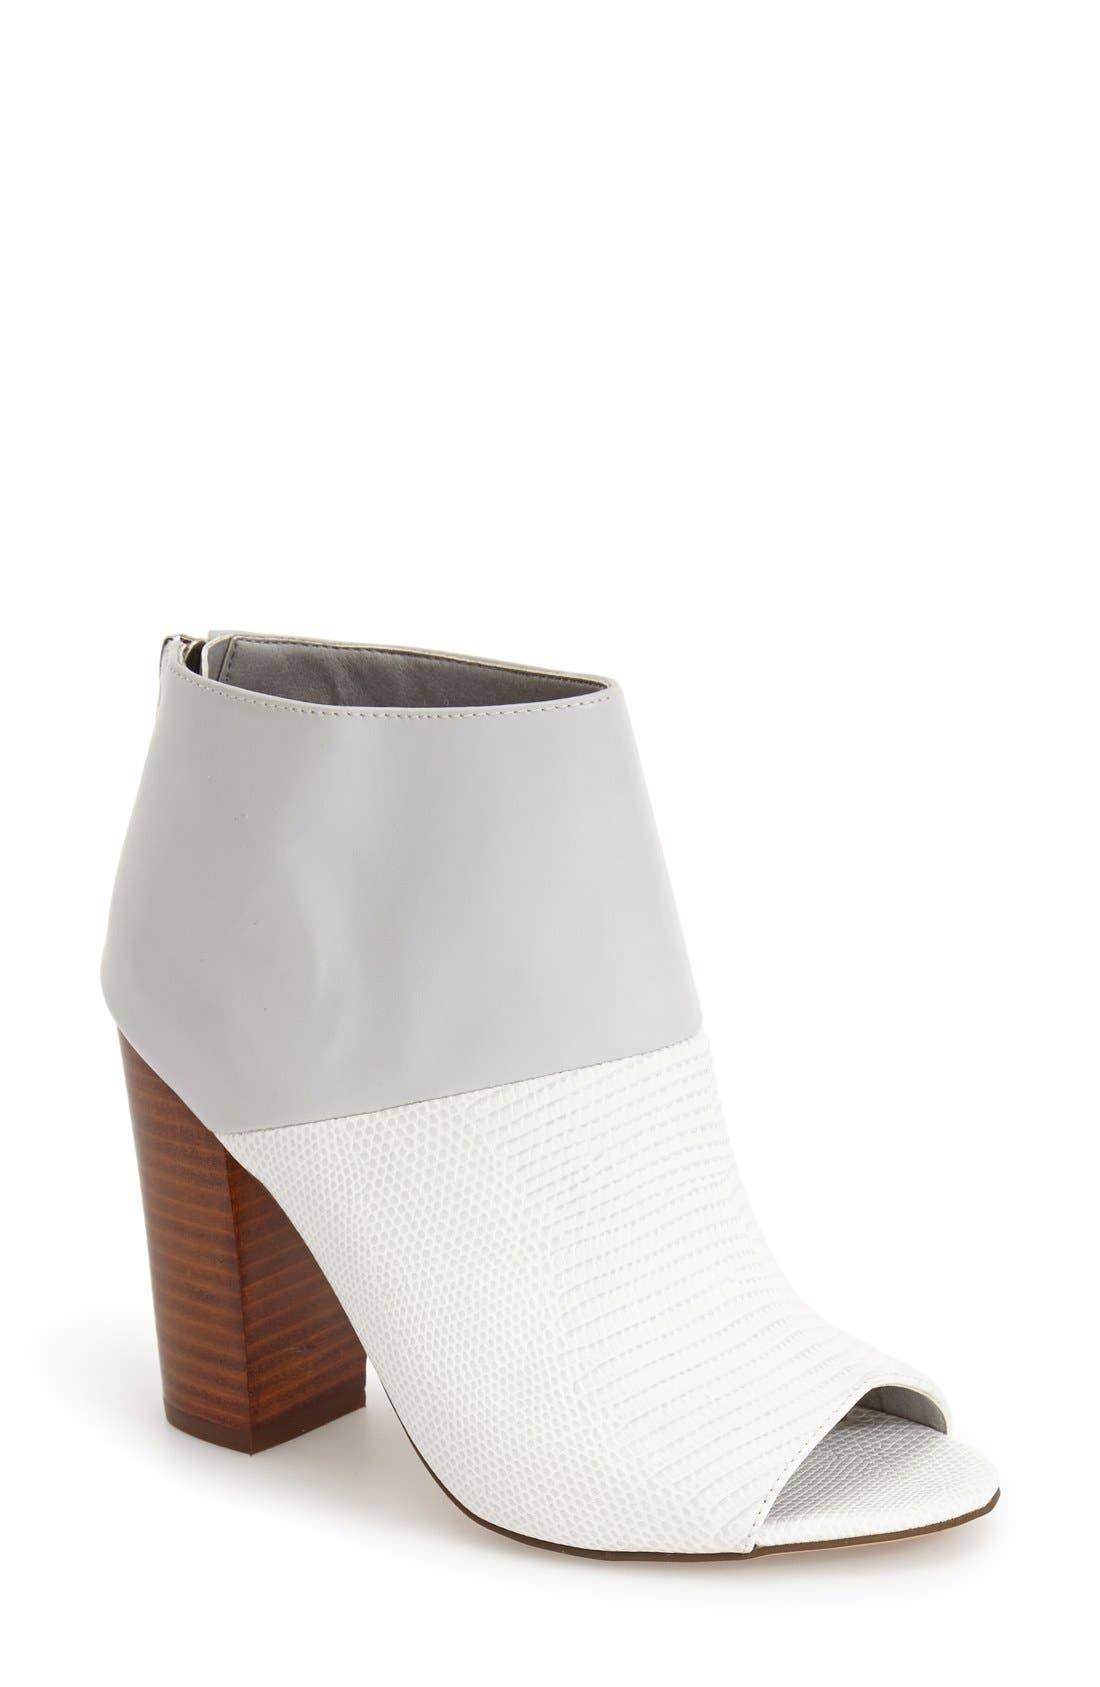 Alternate Image 1 Selected - Circus by Sam Edelman 'North' Peep Toe Ankle Bootie (Women)